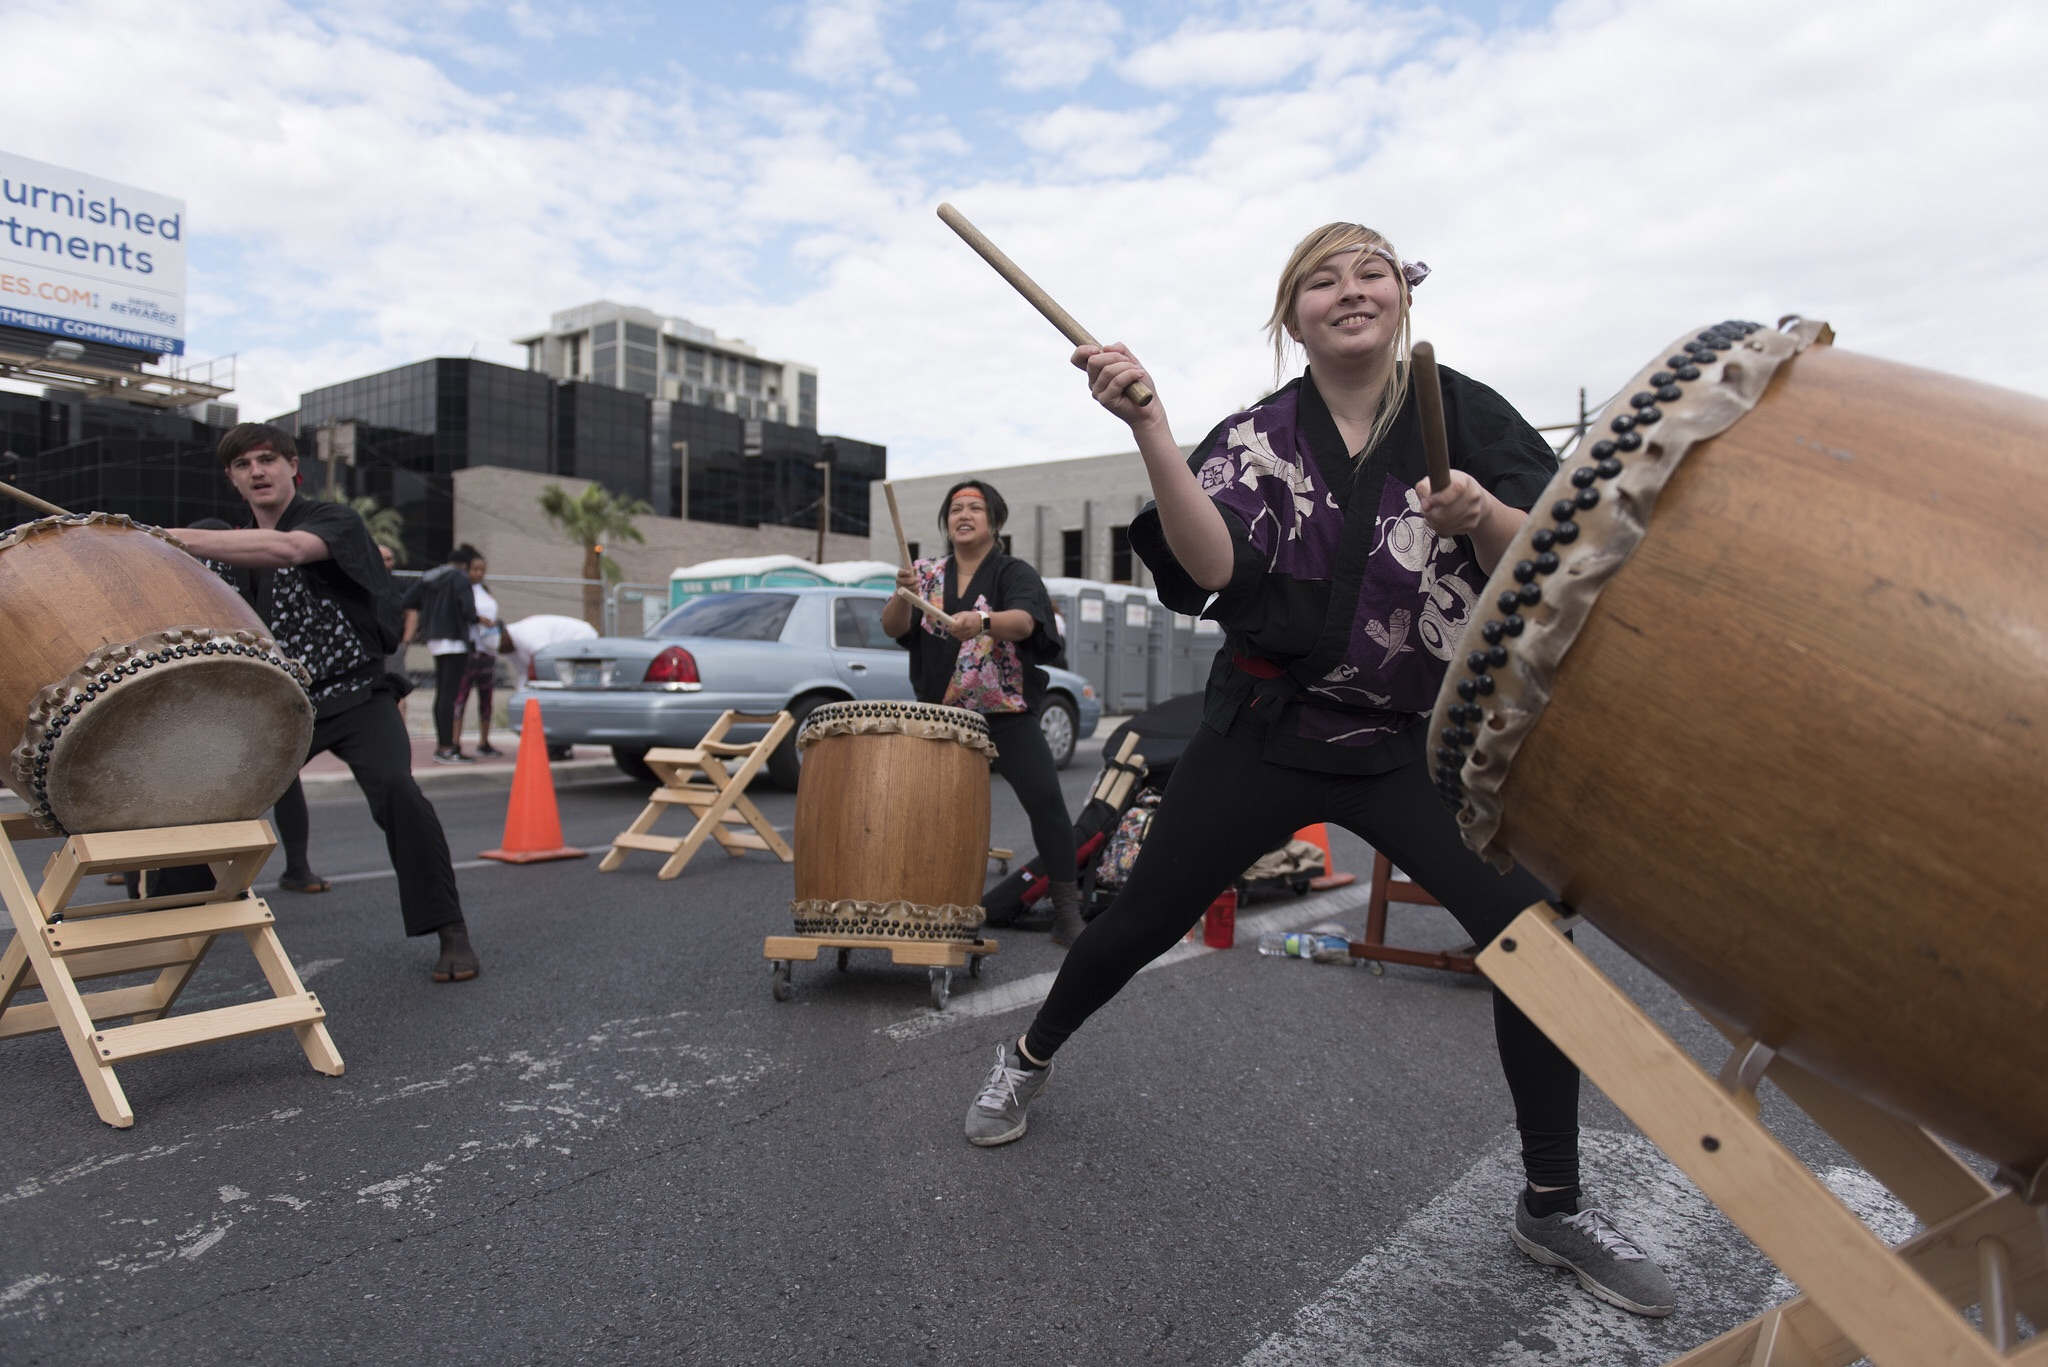 Las Vegas Kaminari Taiko performs at the start line during the Susan G. Komen Race for the Cure in downtown Las Vegas on Saturday, May 7, 2016. The event raises funds for breast cancer awareness, research and treatment. Jason Ogulnik/Las Vegas Review-Journal